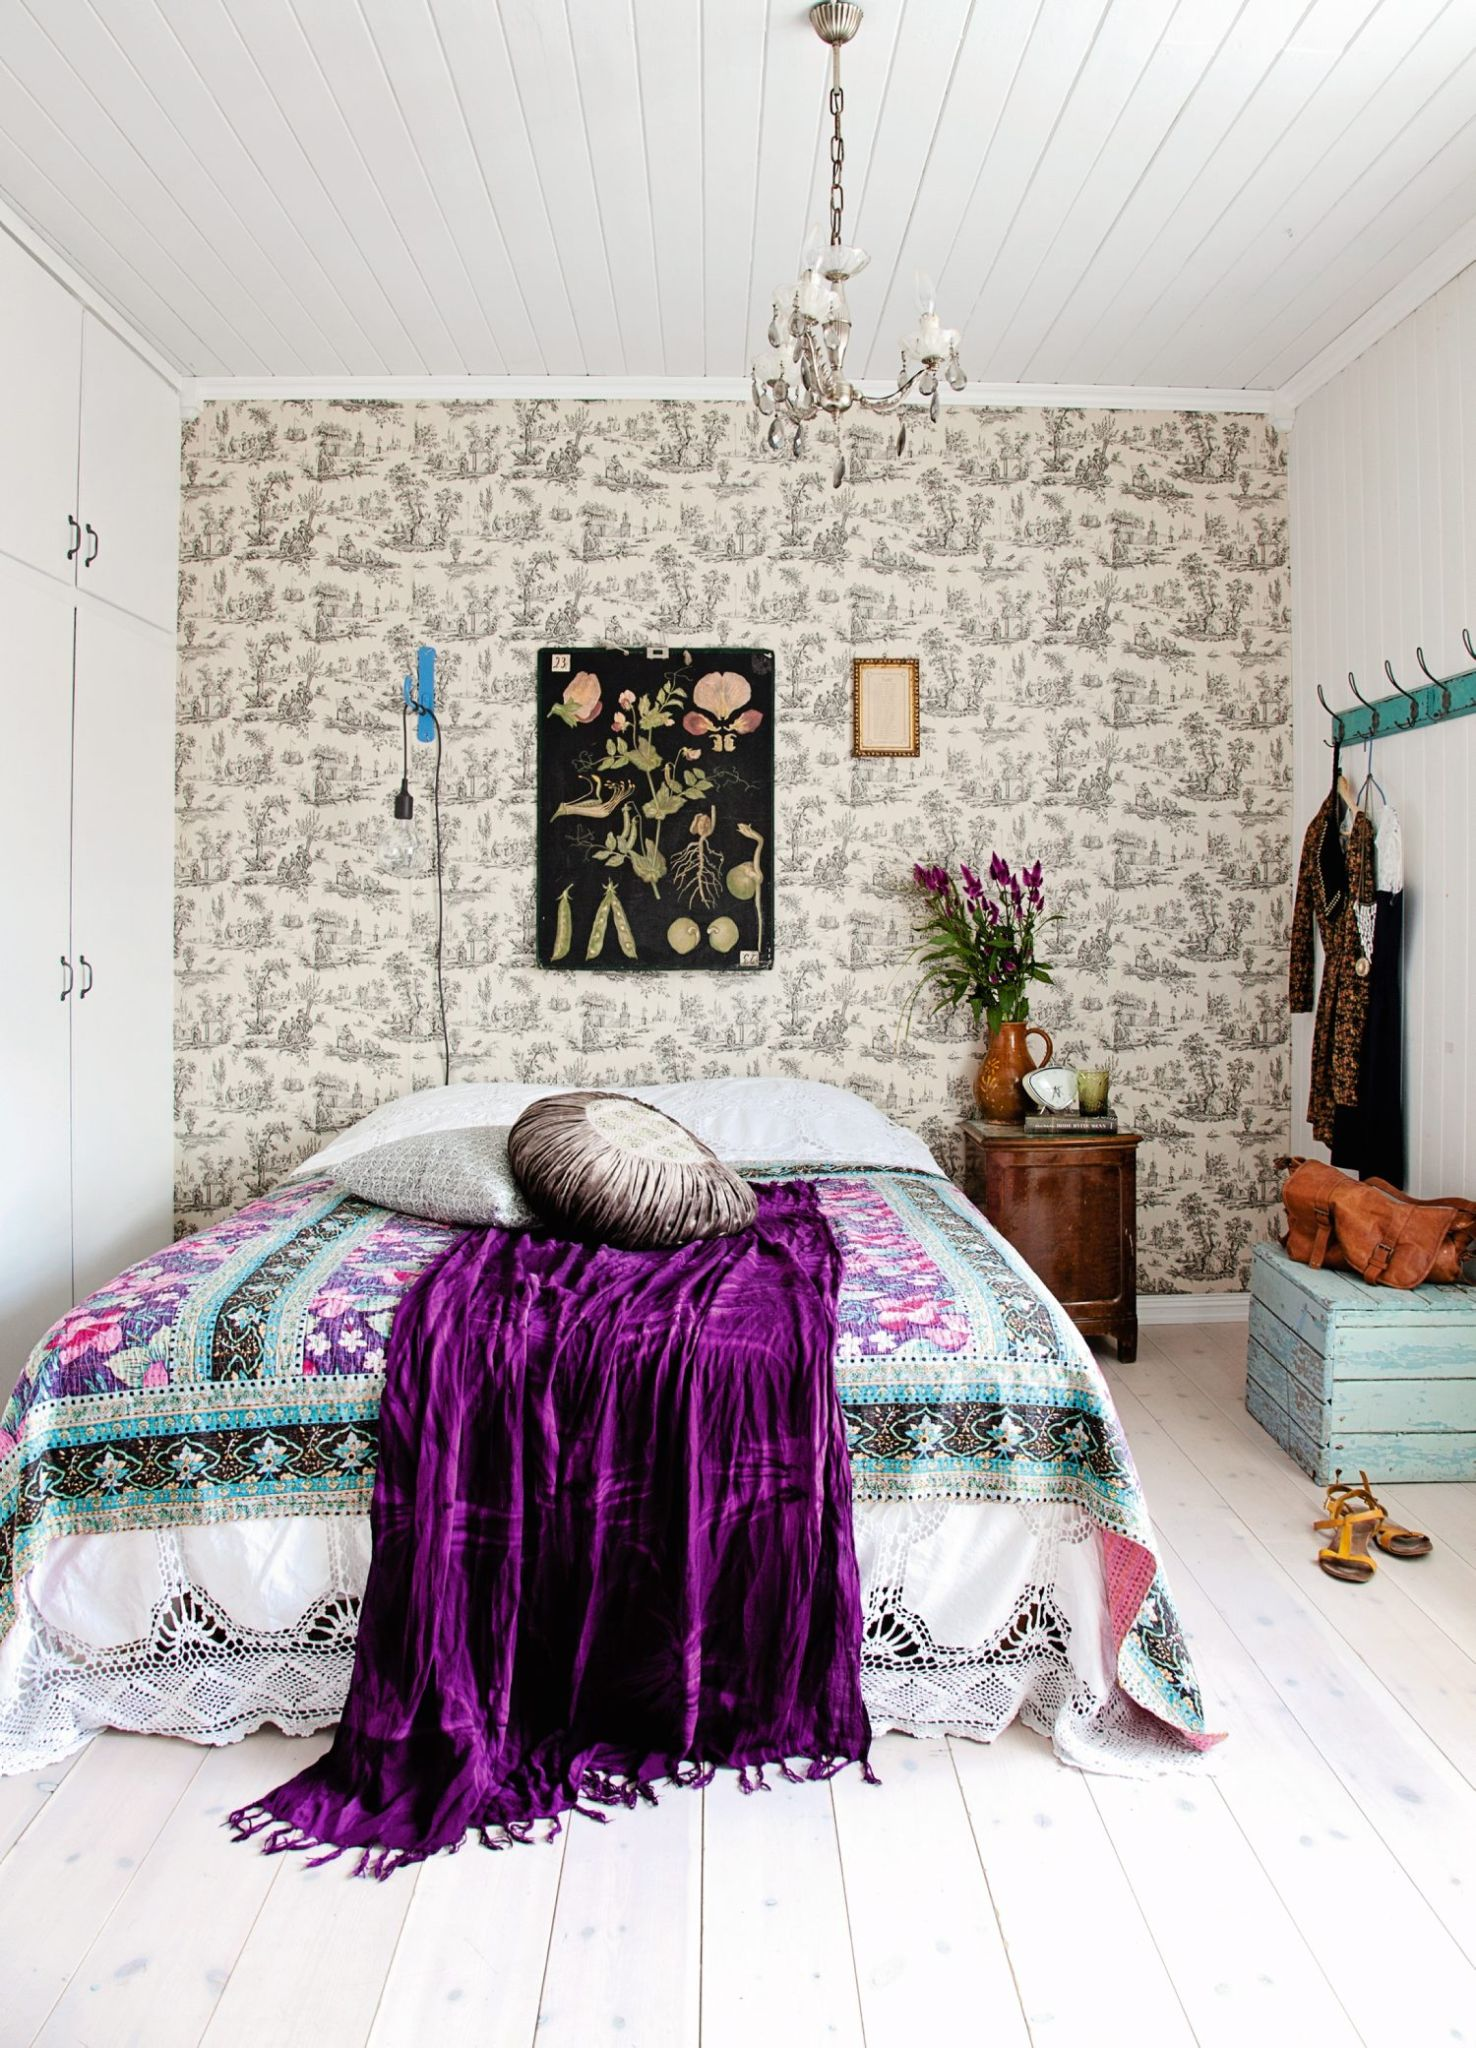 Vintage Style Bedroom Design Idea dwellingdecor